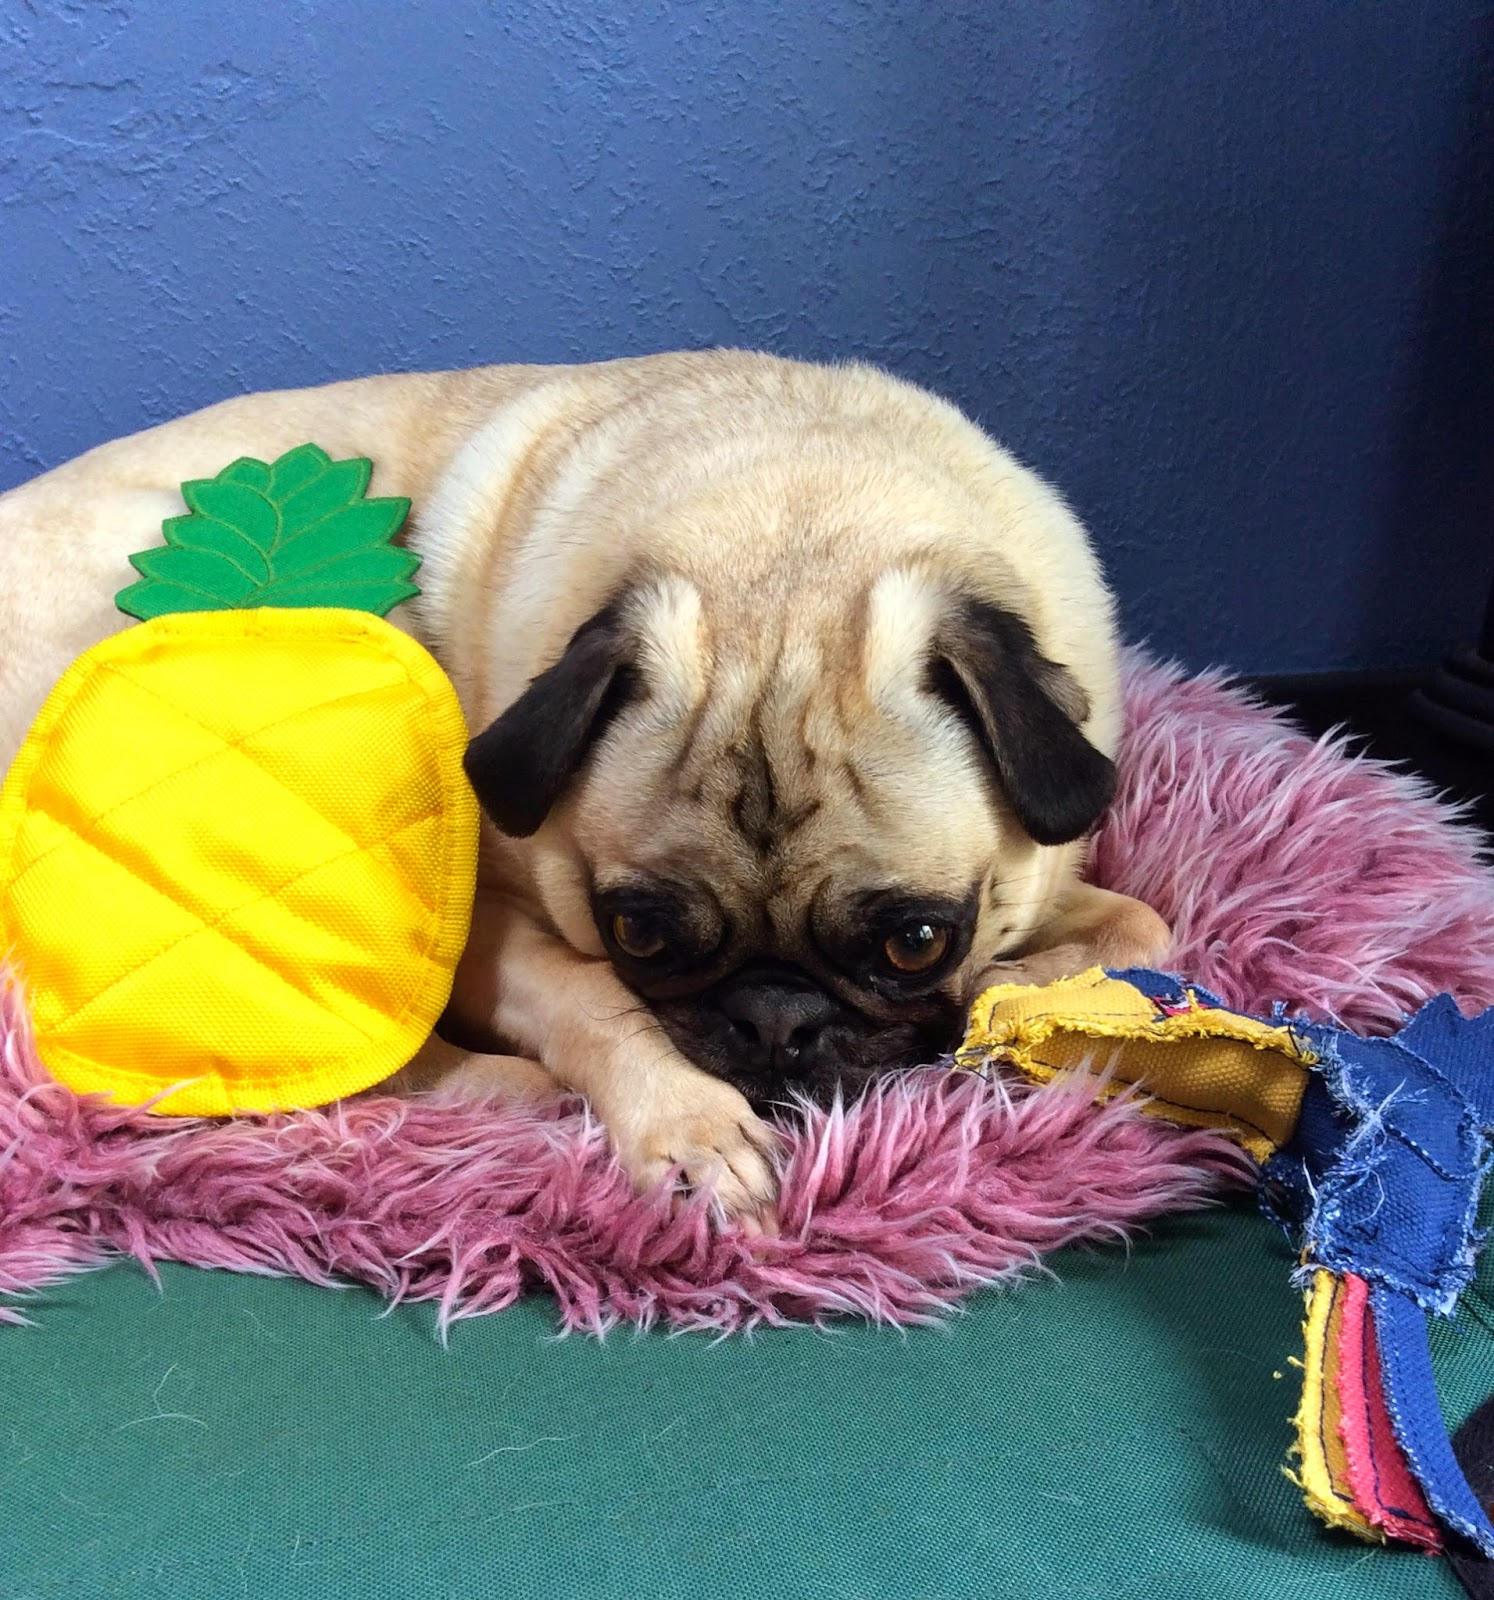 Liam the pug posing with toys